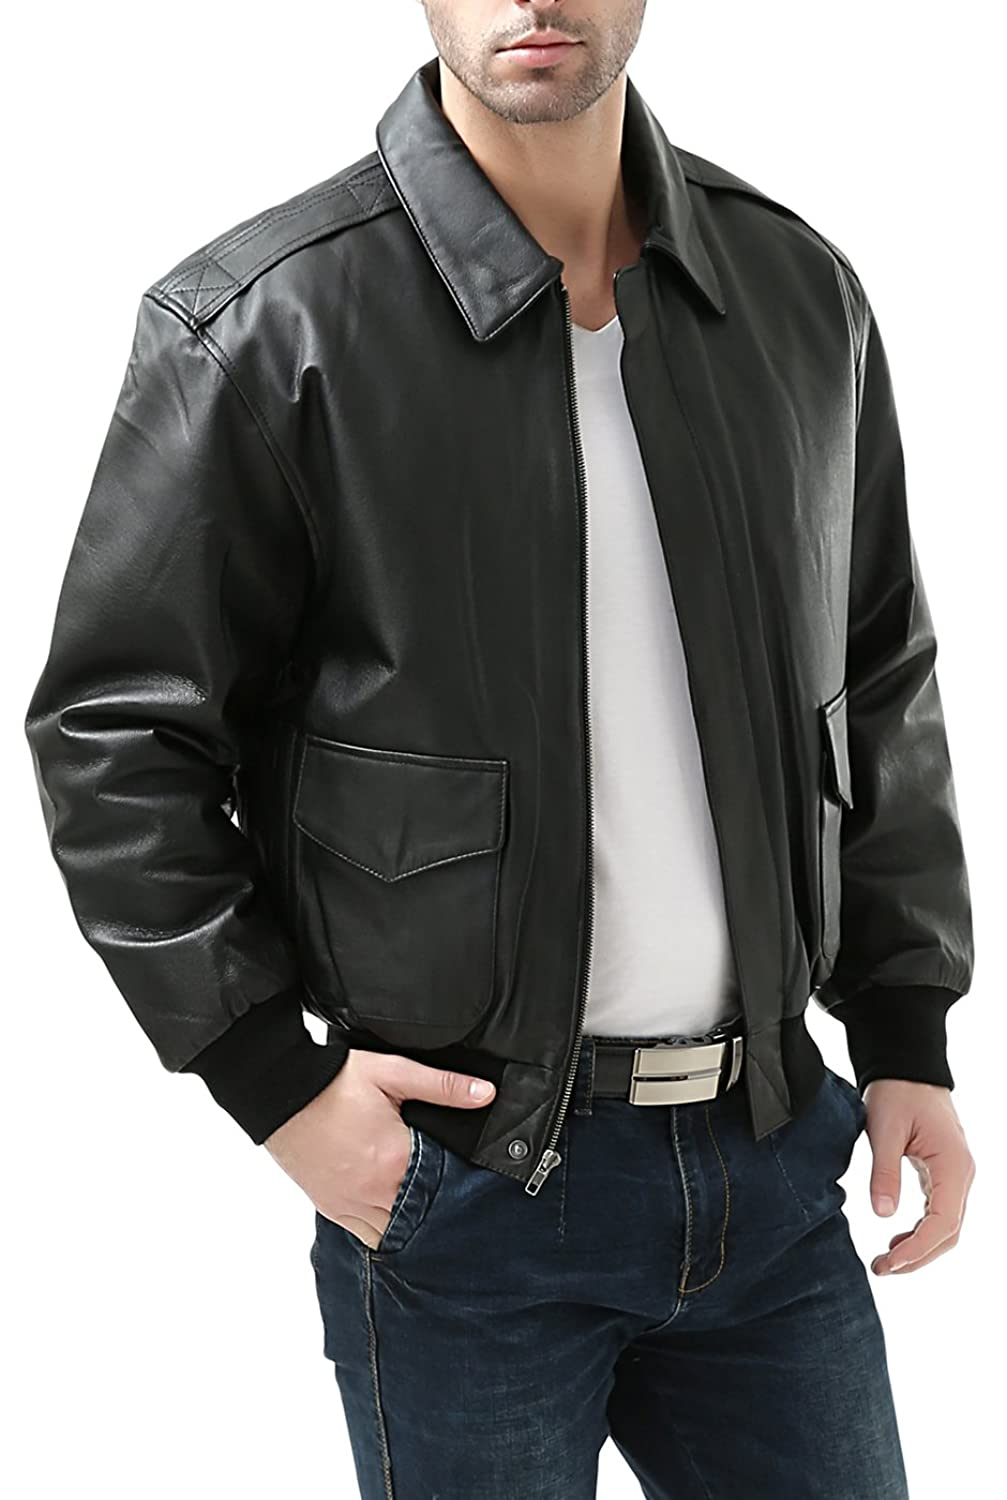 Landing Leathers Men's Air Force A-2 Leather Flight Bomber Jacket:  Amazon.ca: Clothing & Accessories